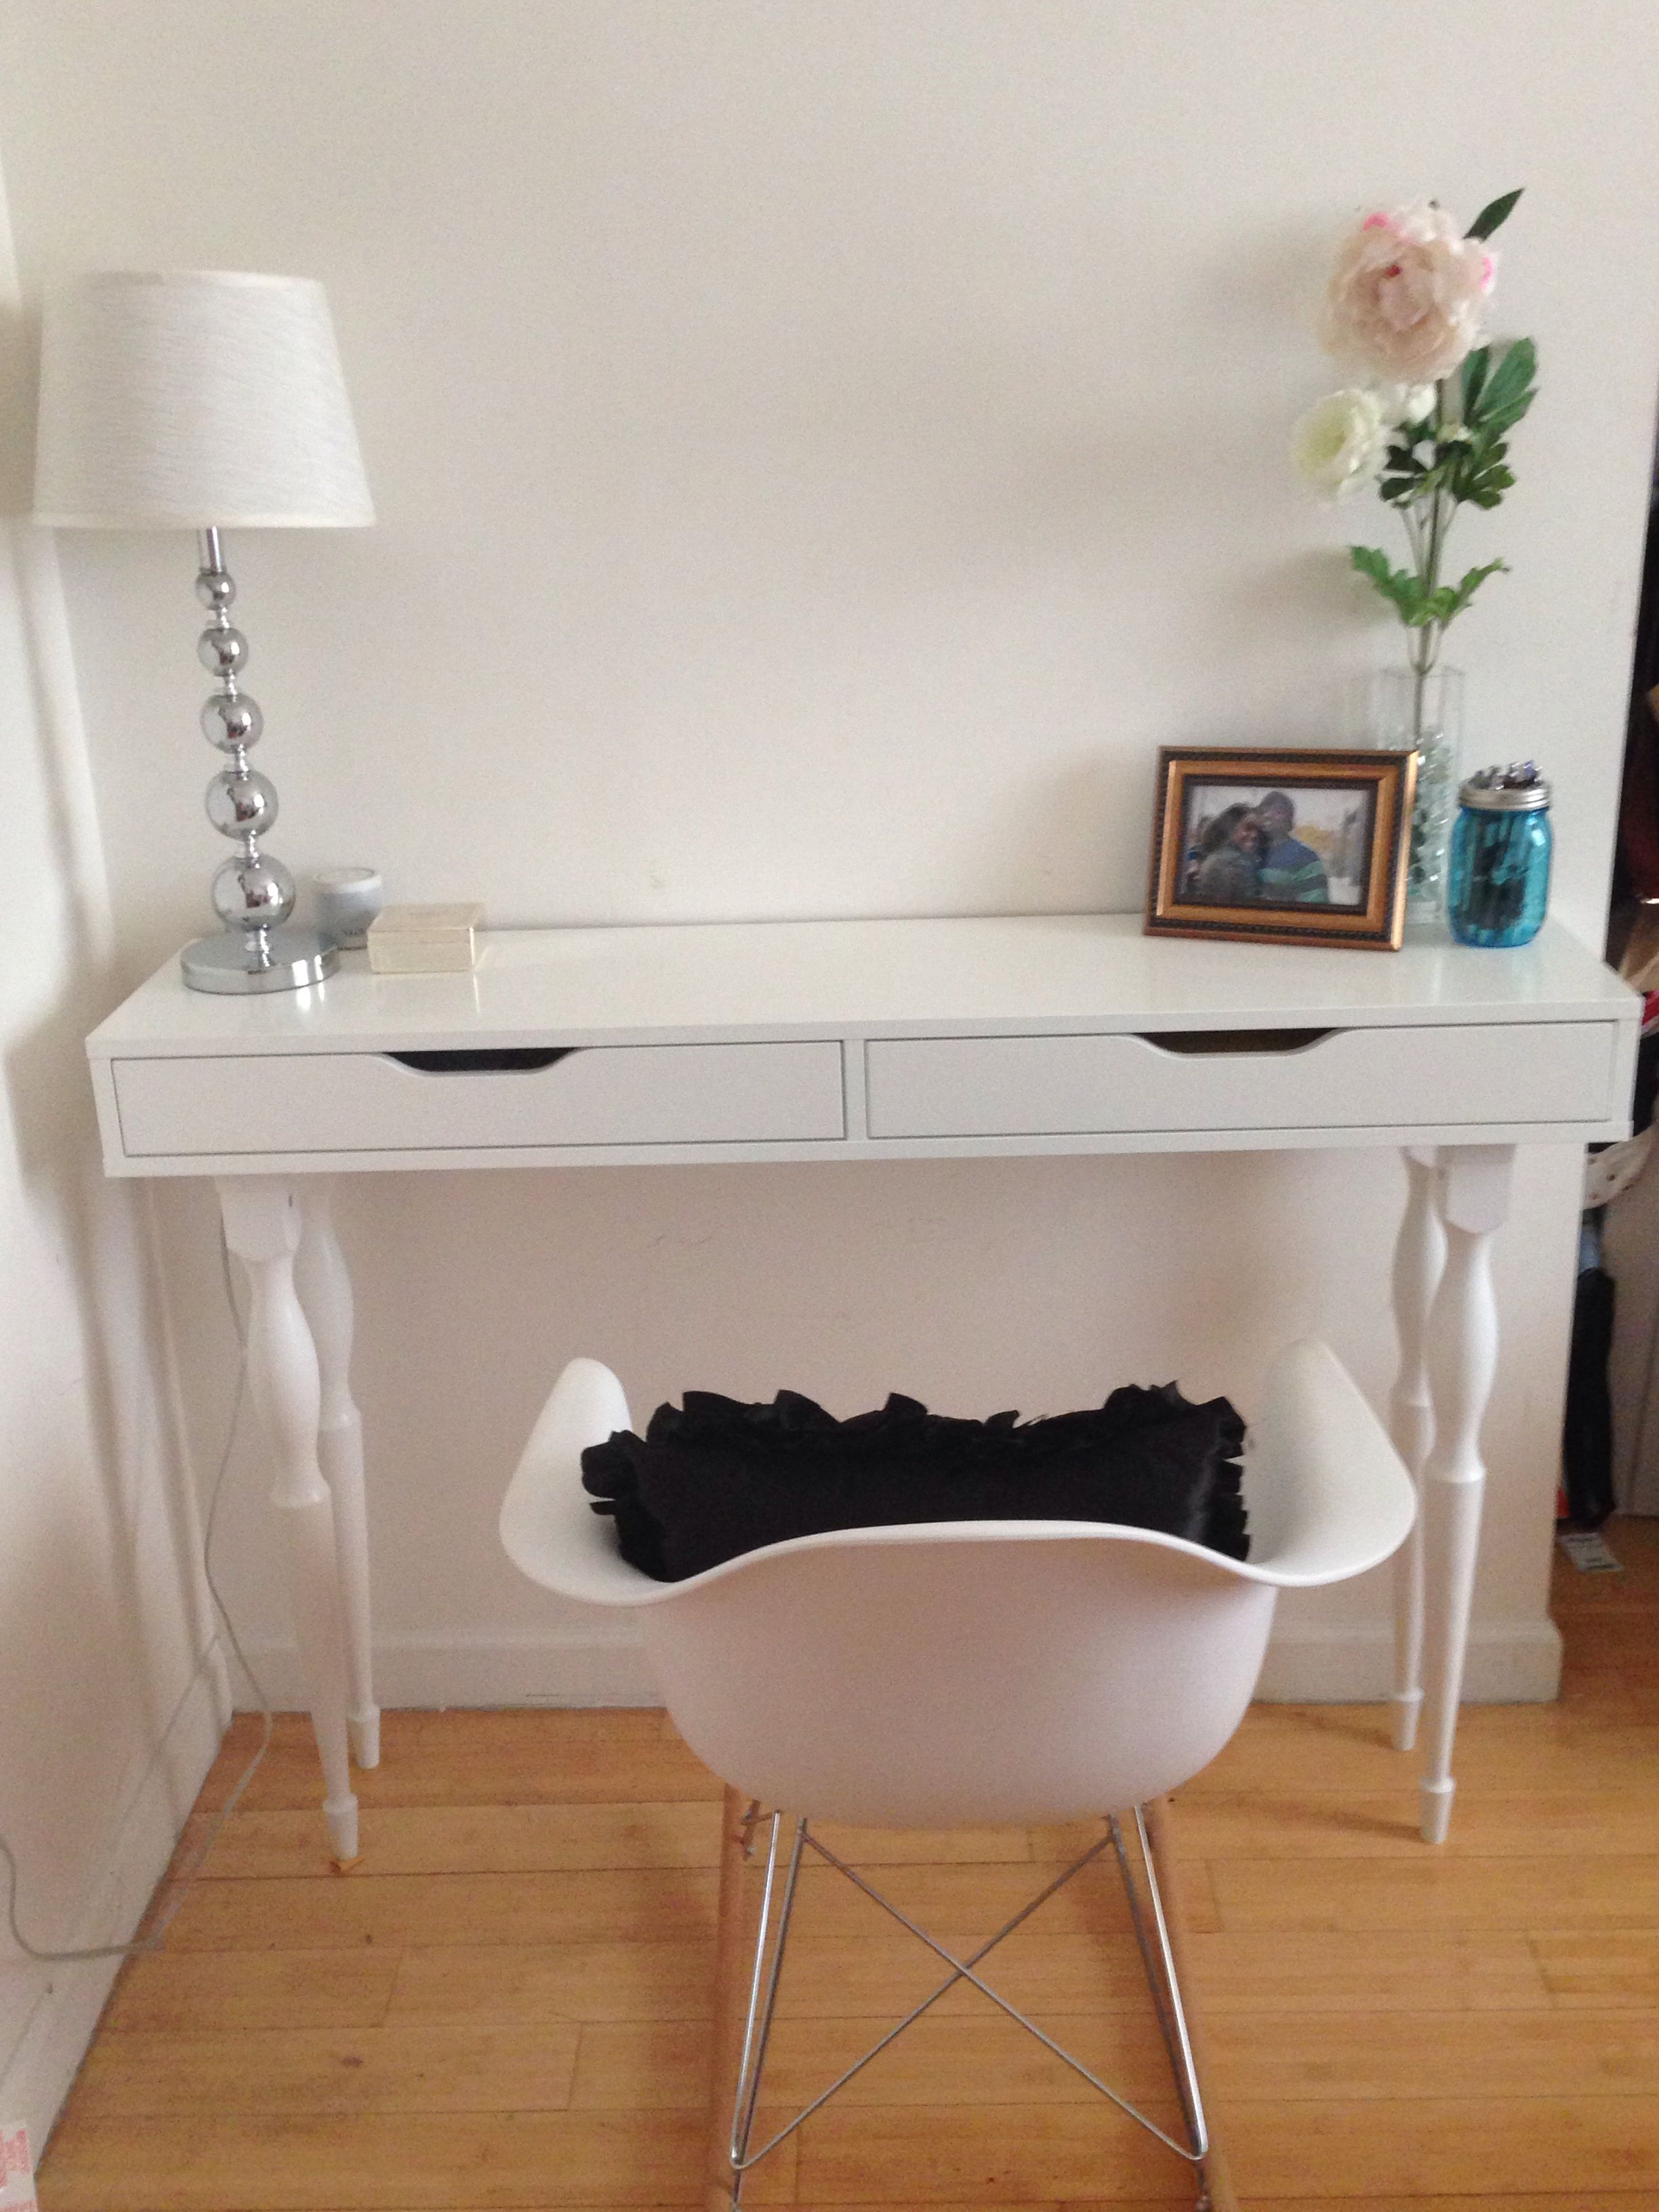 Ikea Tisch Regal Ikea Hack Ekby Alex Shelf 4 Nipen Table Legs My Diy